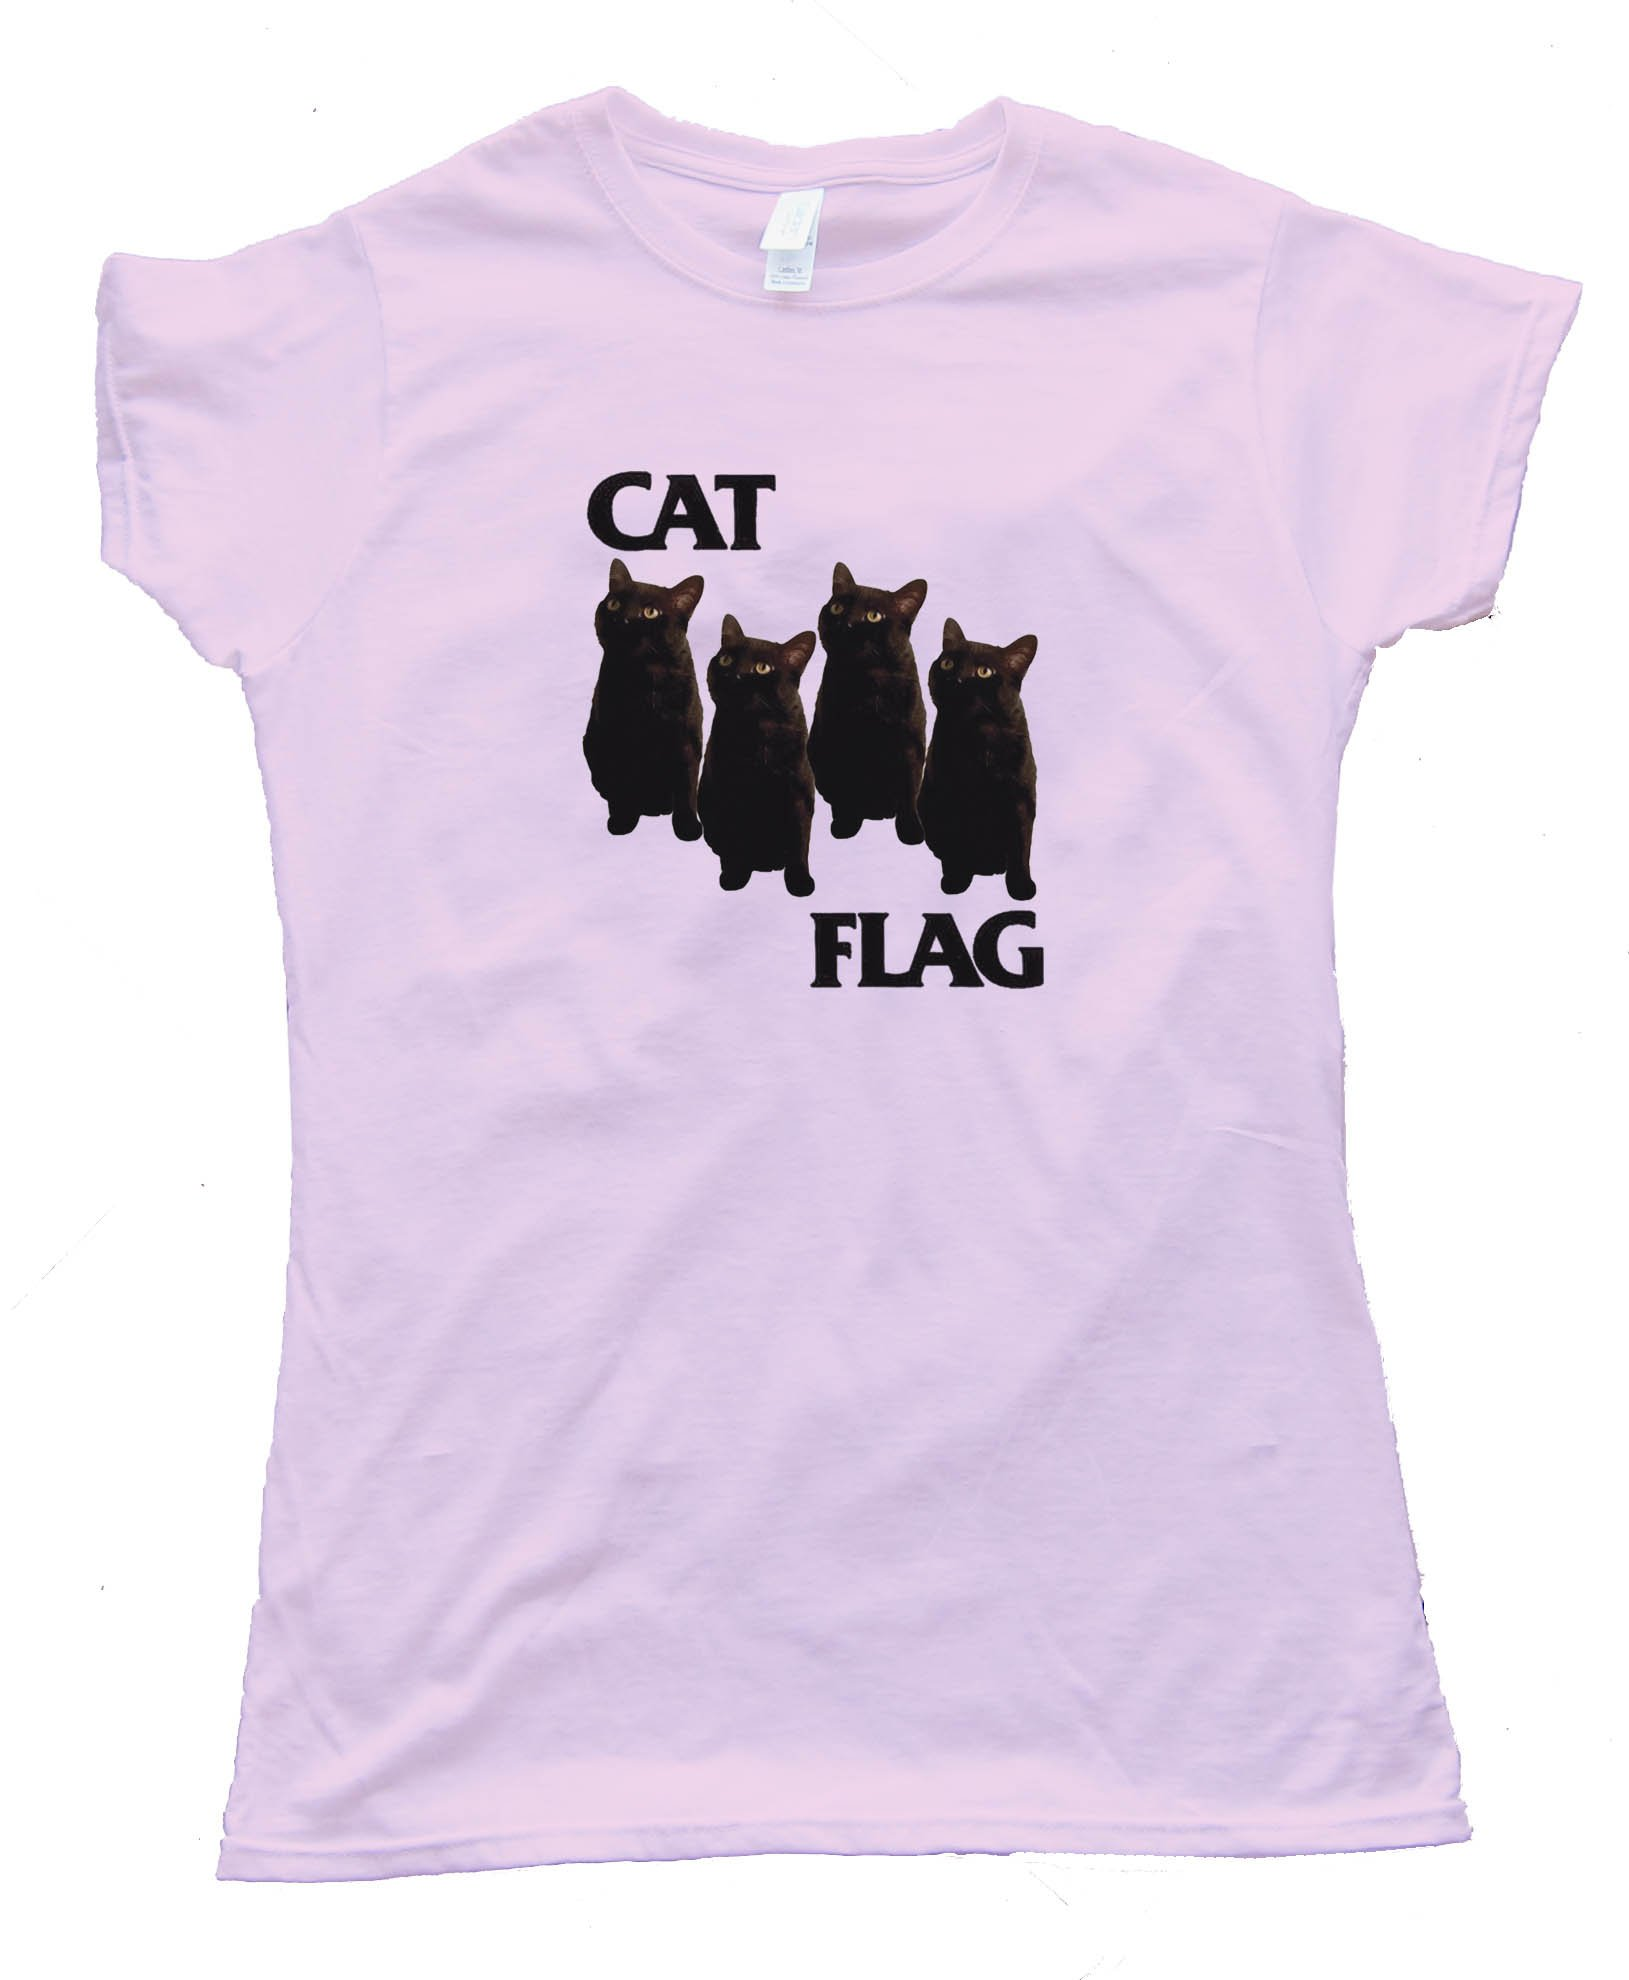 Womens Cat Flag - Black Flag Meme - Tee Shirt